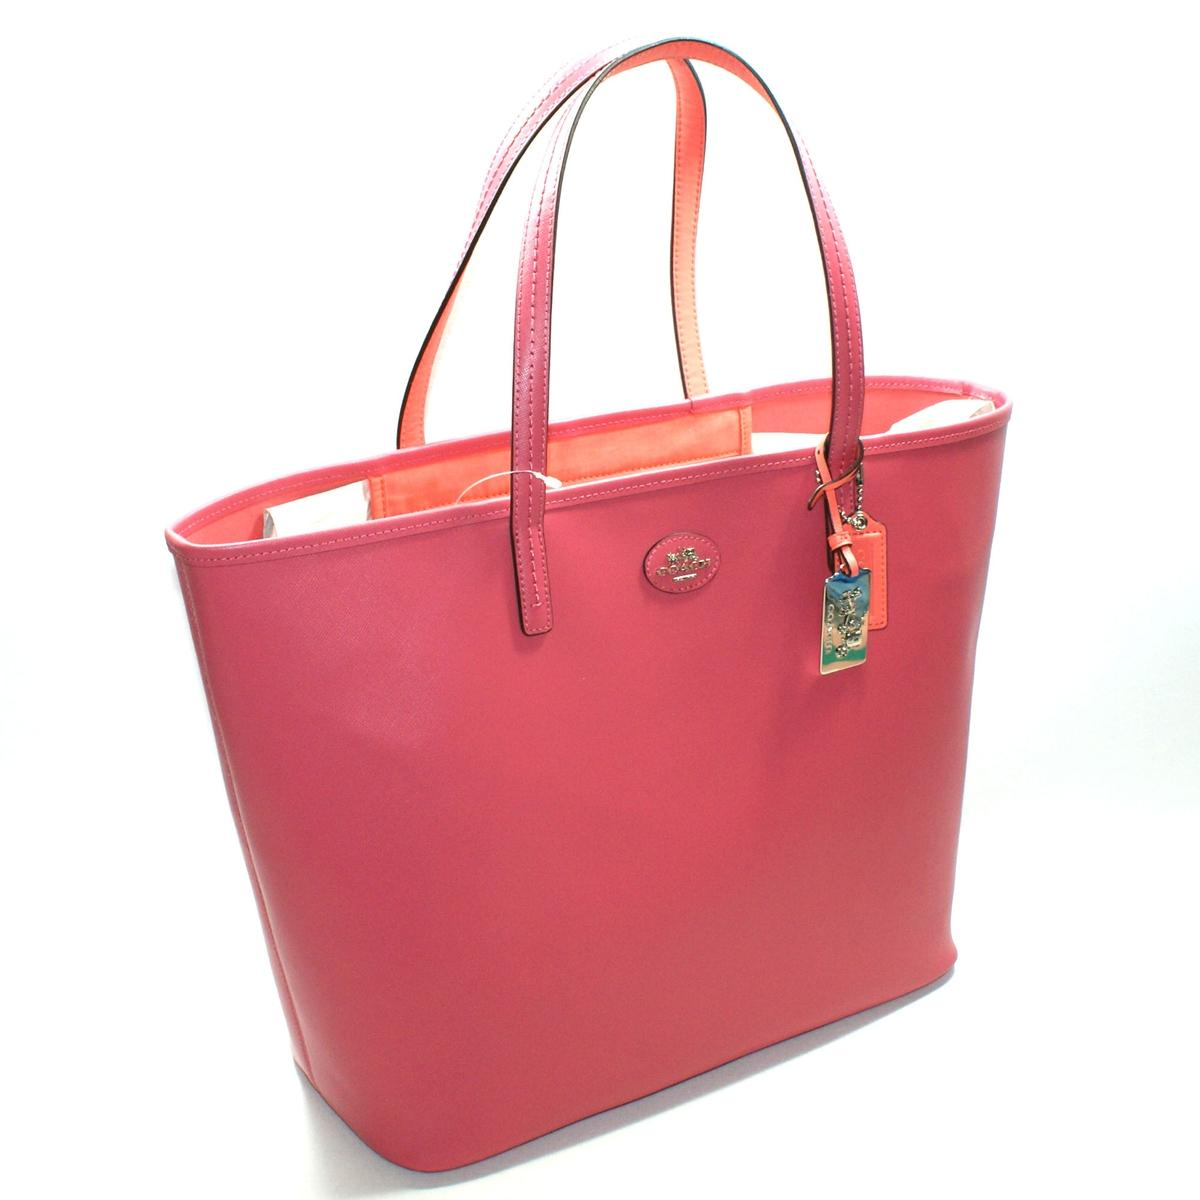 Coach Loganberry Coral Leather Large Tote Bag 32701